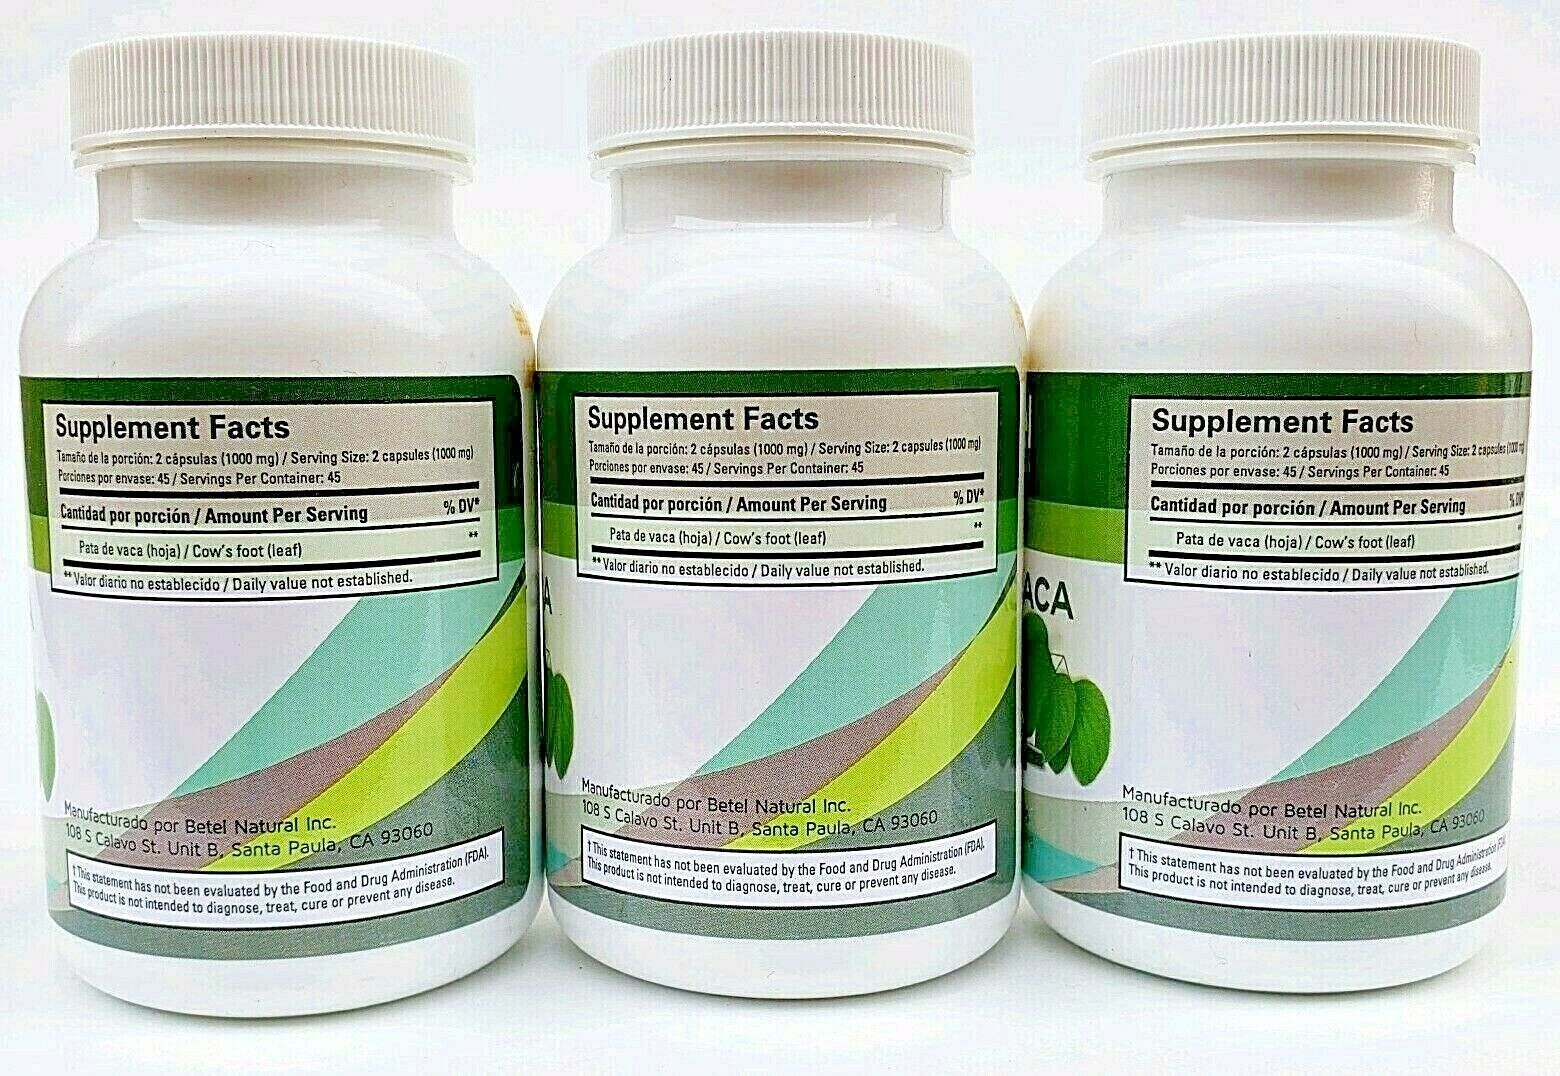 (3 Packs) PATA DE VACA (Cow's Foot) 270 Capsules 1000mg Natural Support Glucose 2